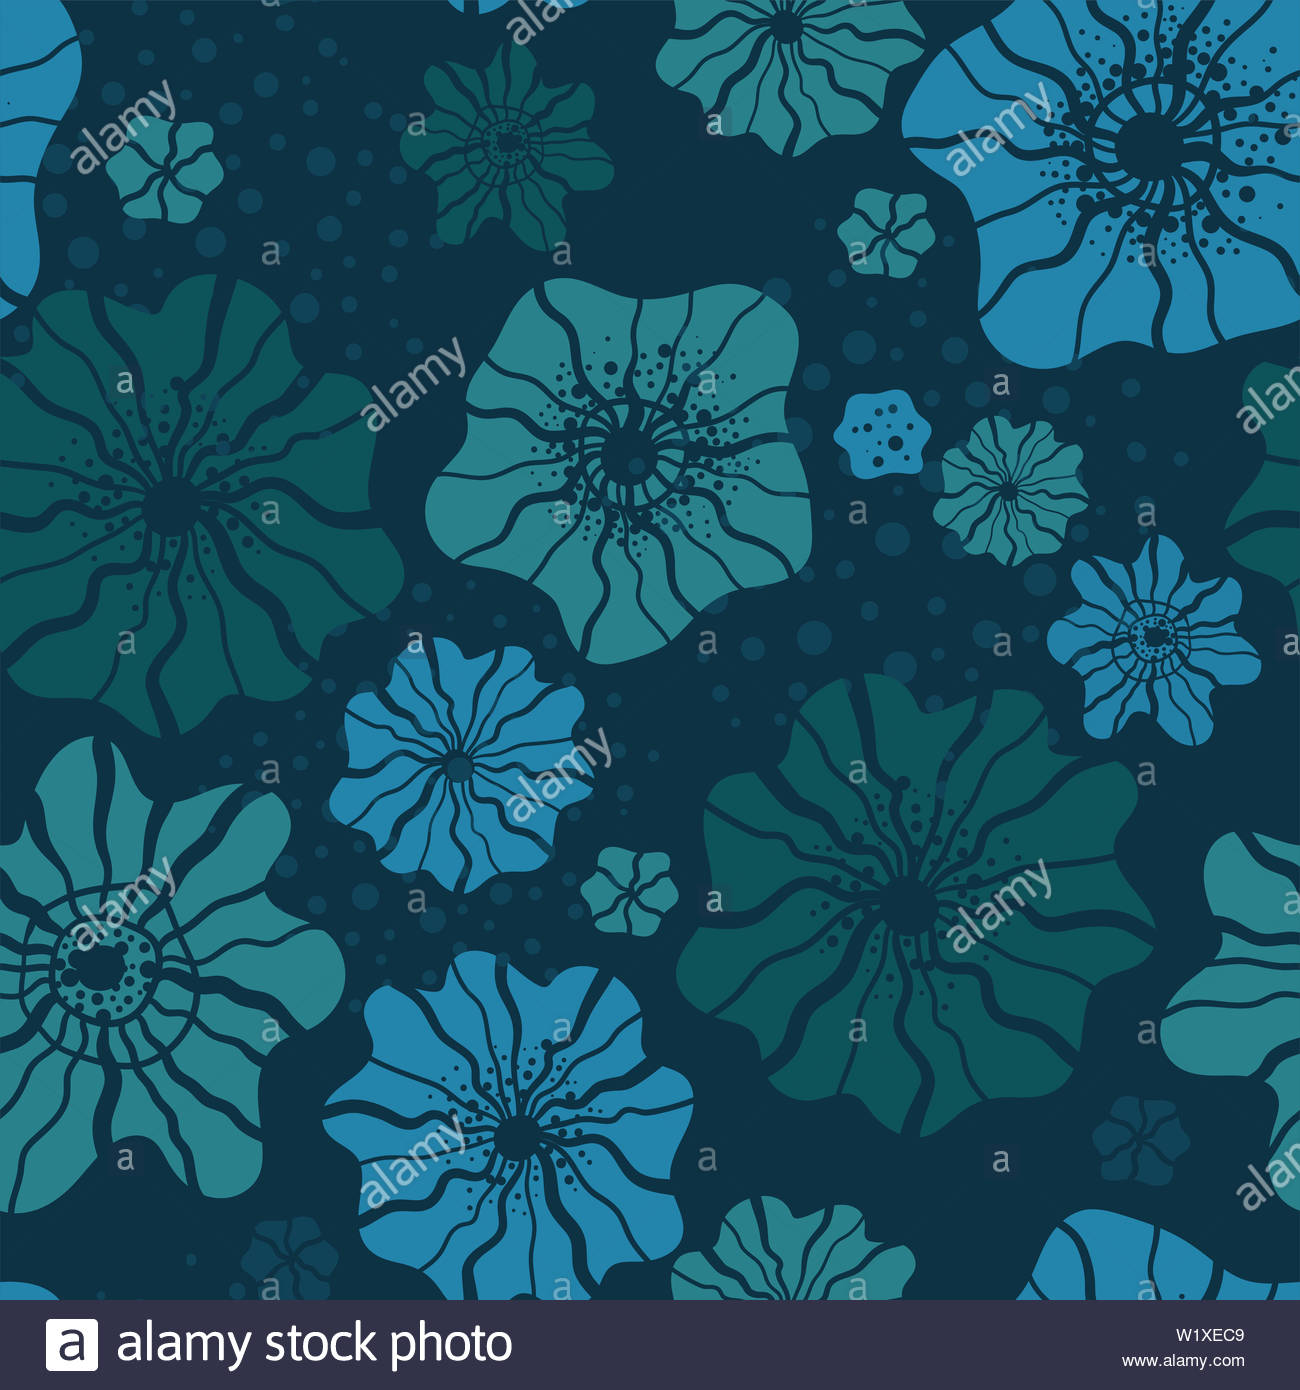 Under Water Seamless Pattern Blue Floral Repeat Background